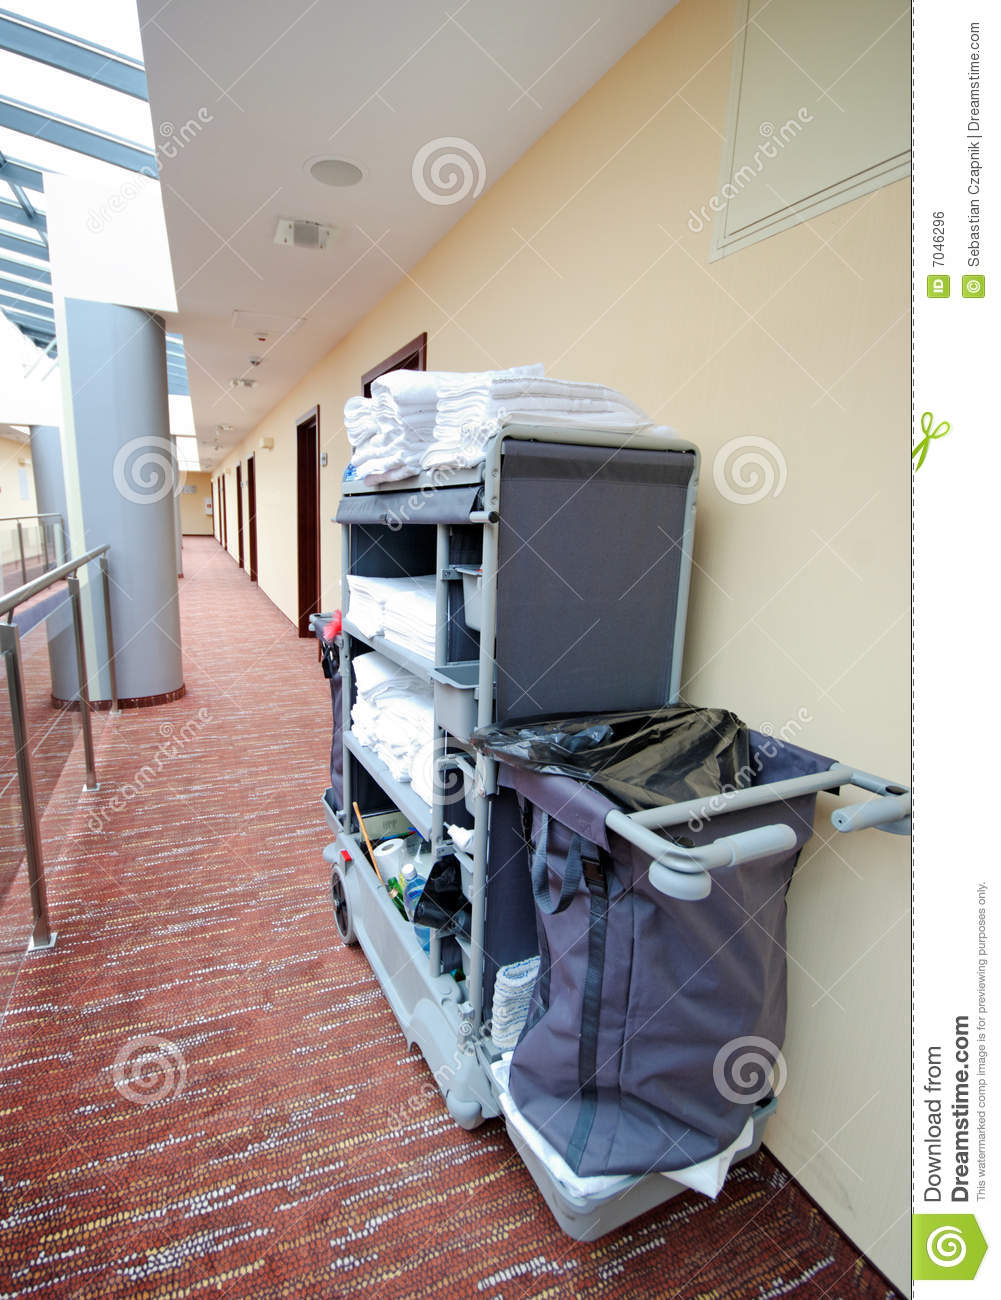 Hotel Room Cleaning Trolley Stock Photo Image Of Hotel